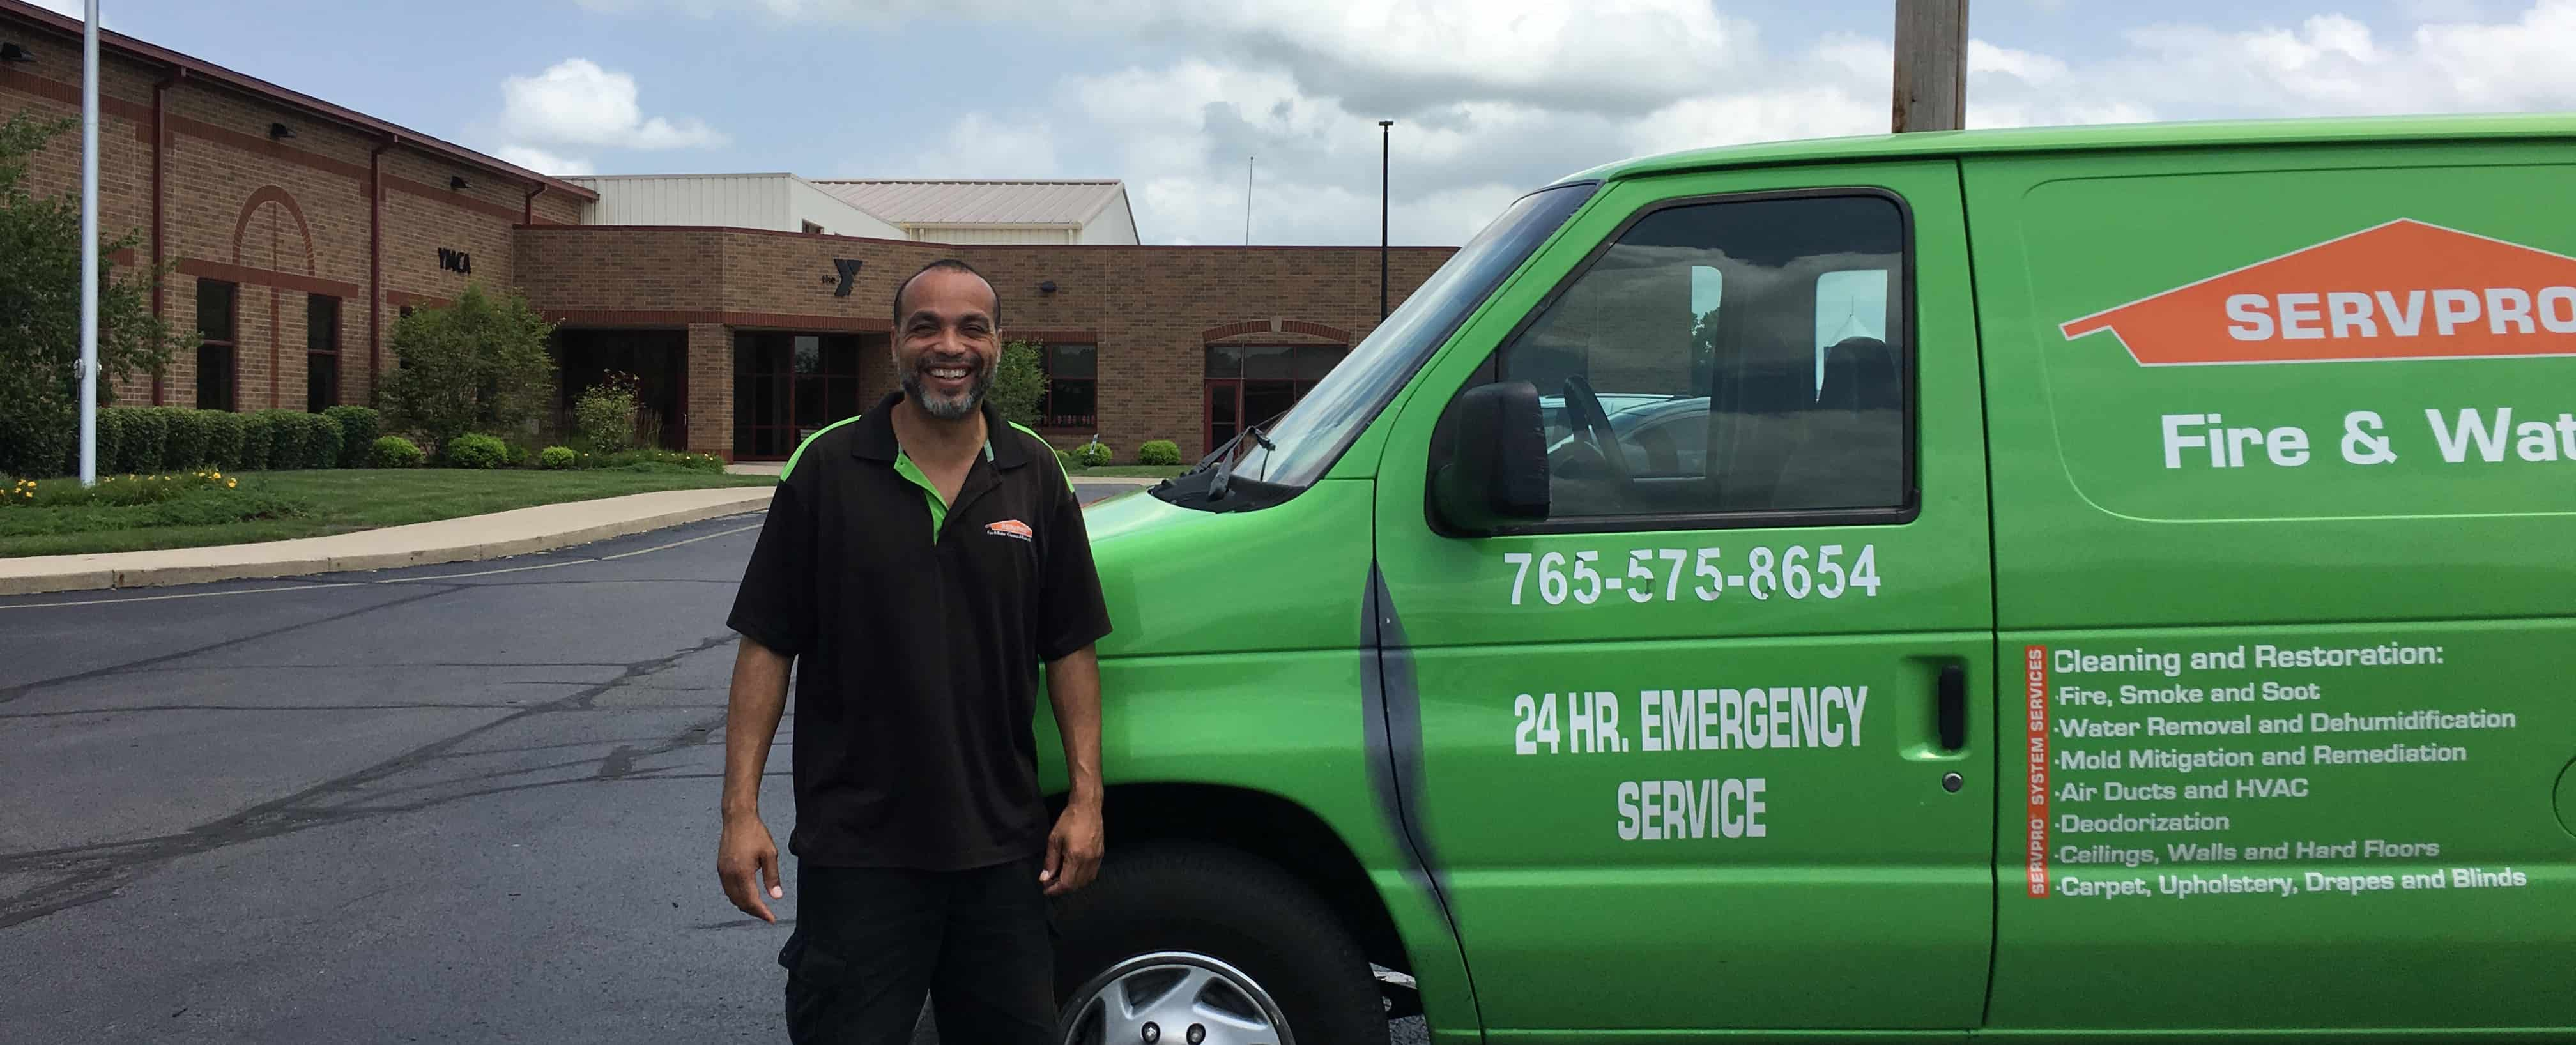 Servpro van outside of the Henry County YMCA symbolizing the partnership between the organizations.